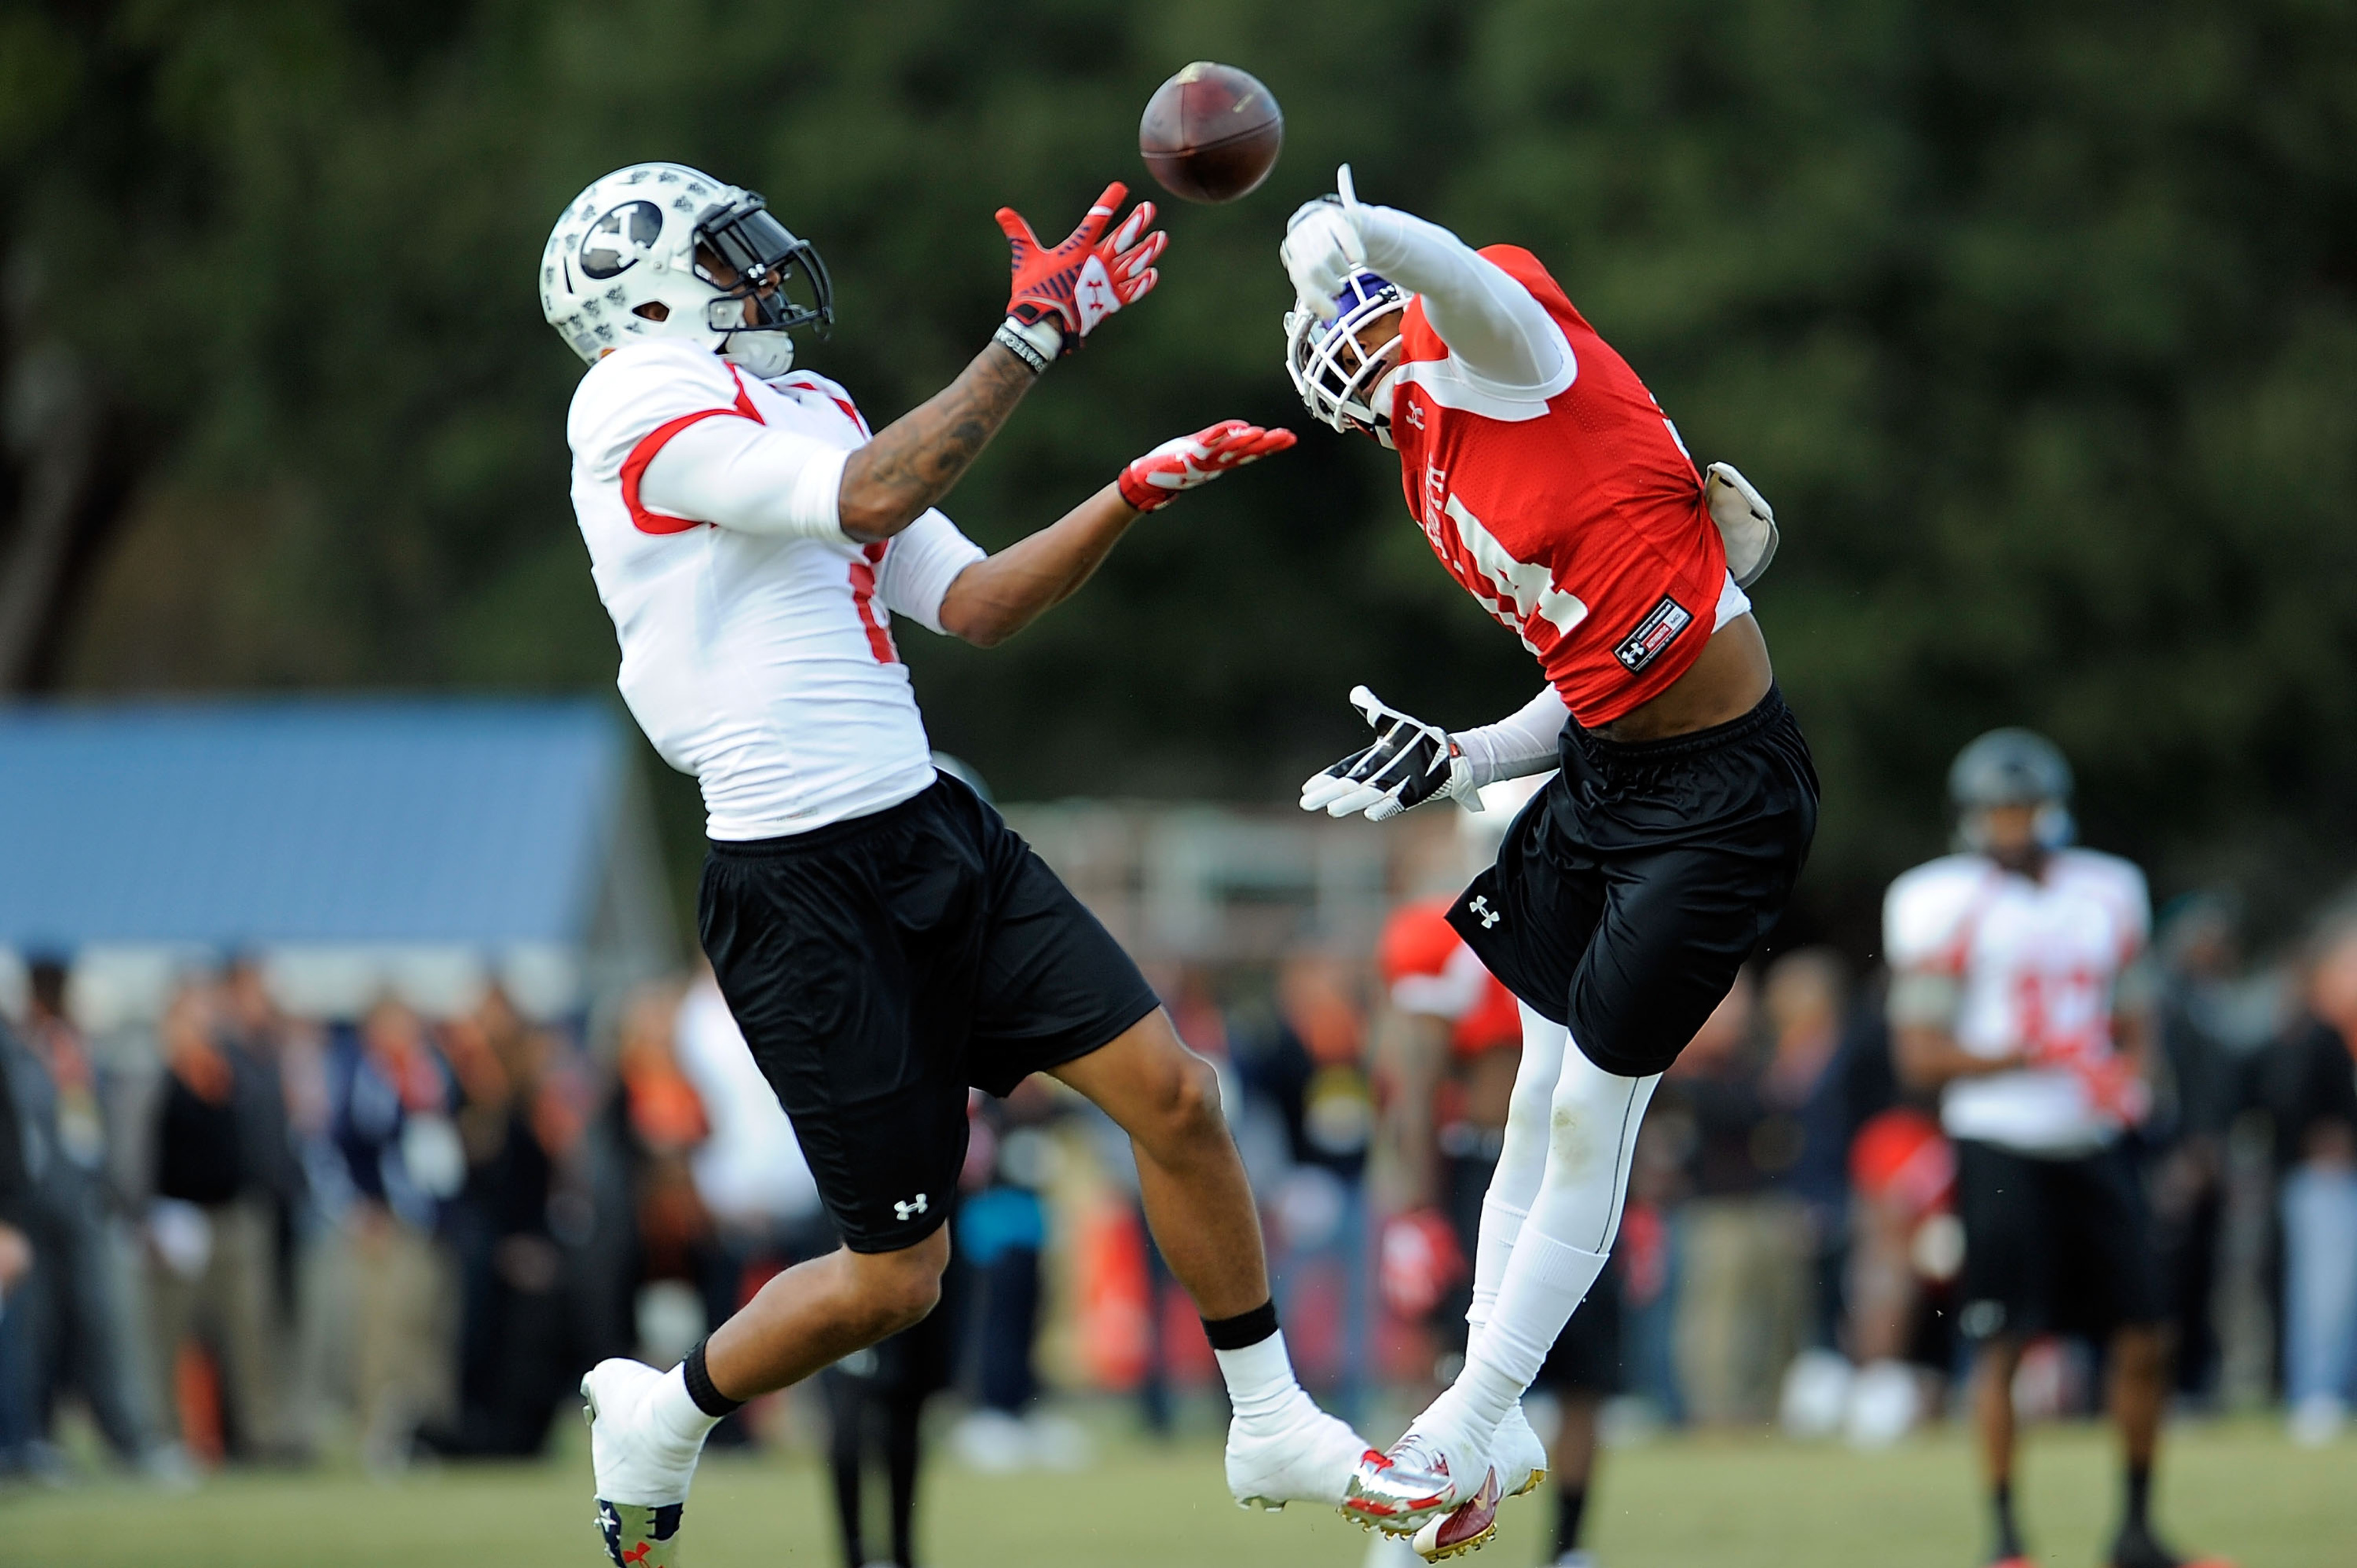 BYU receiver Cody Hoffman catches a pass at Senior Bowl practice.